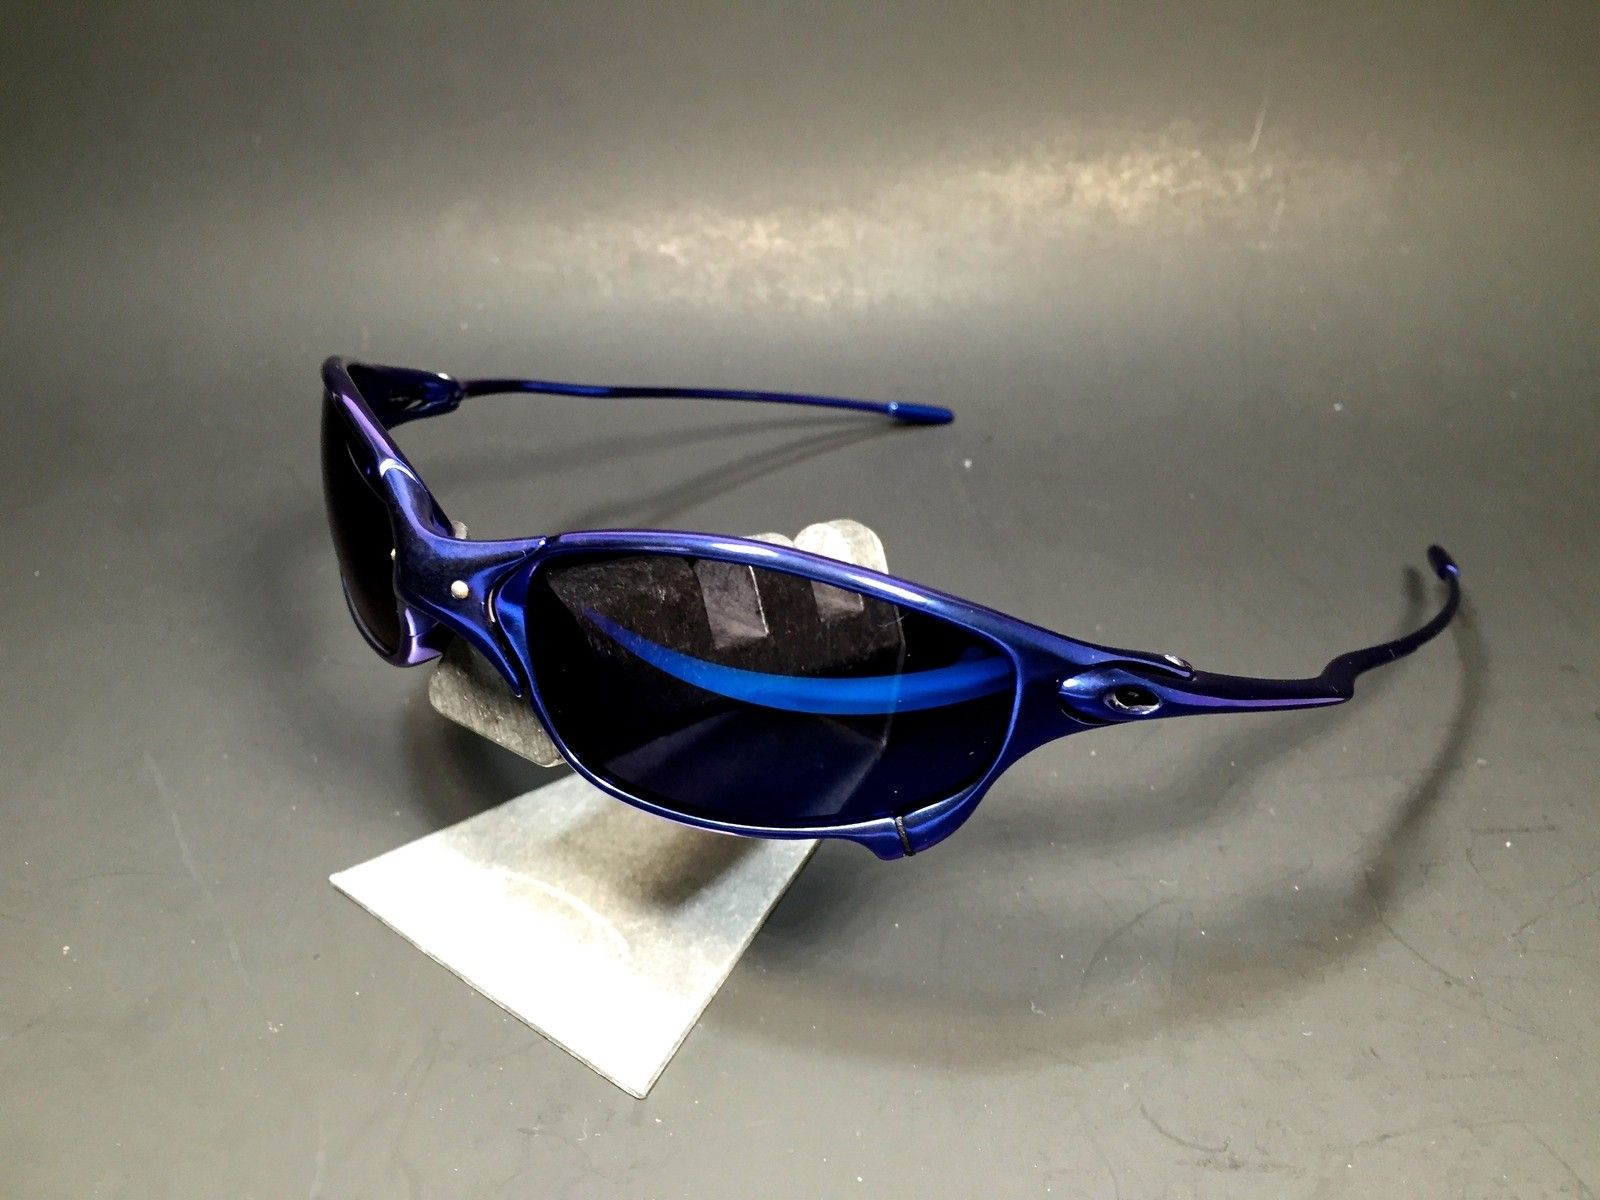 Anodizing X-Metals by XMC optics - IMG_1402.JPG